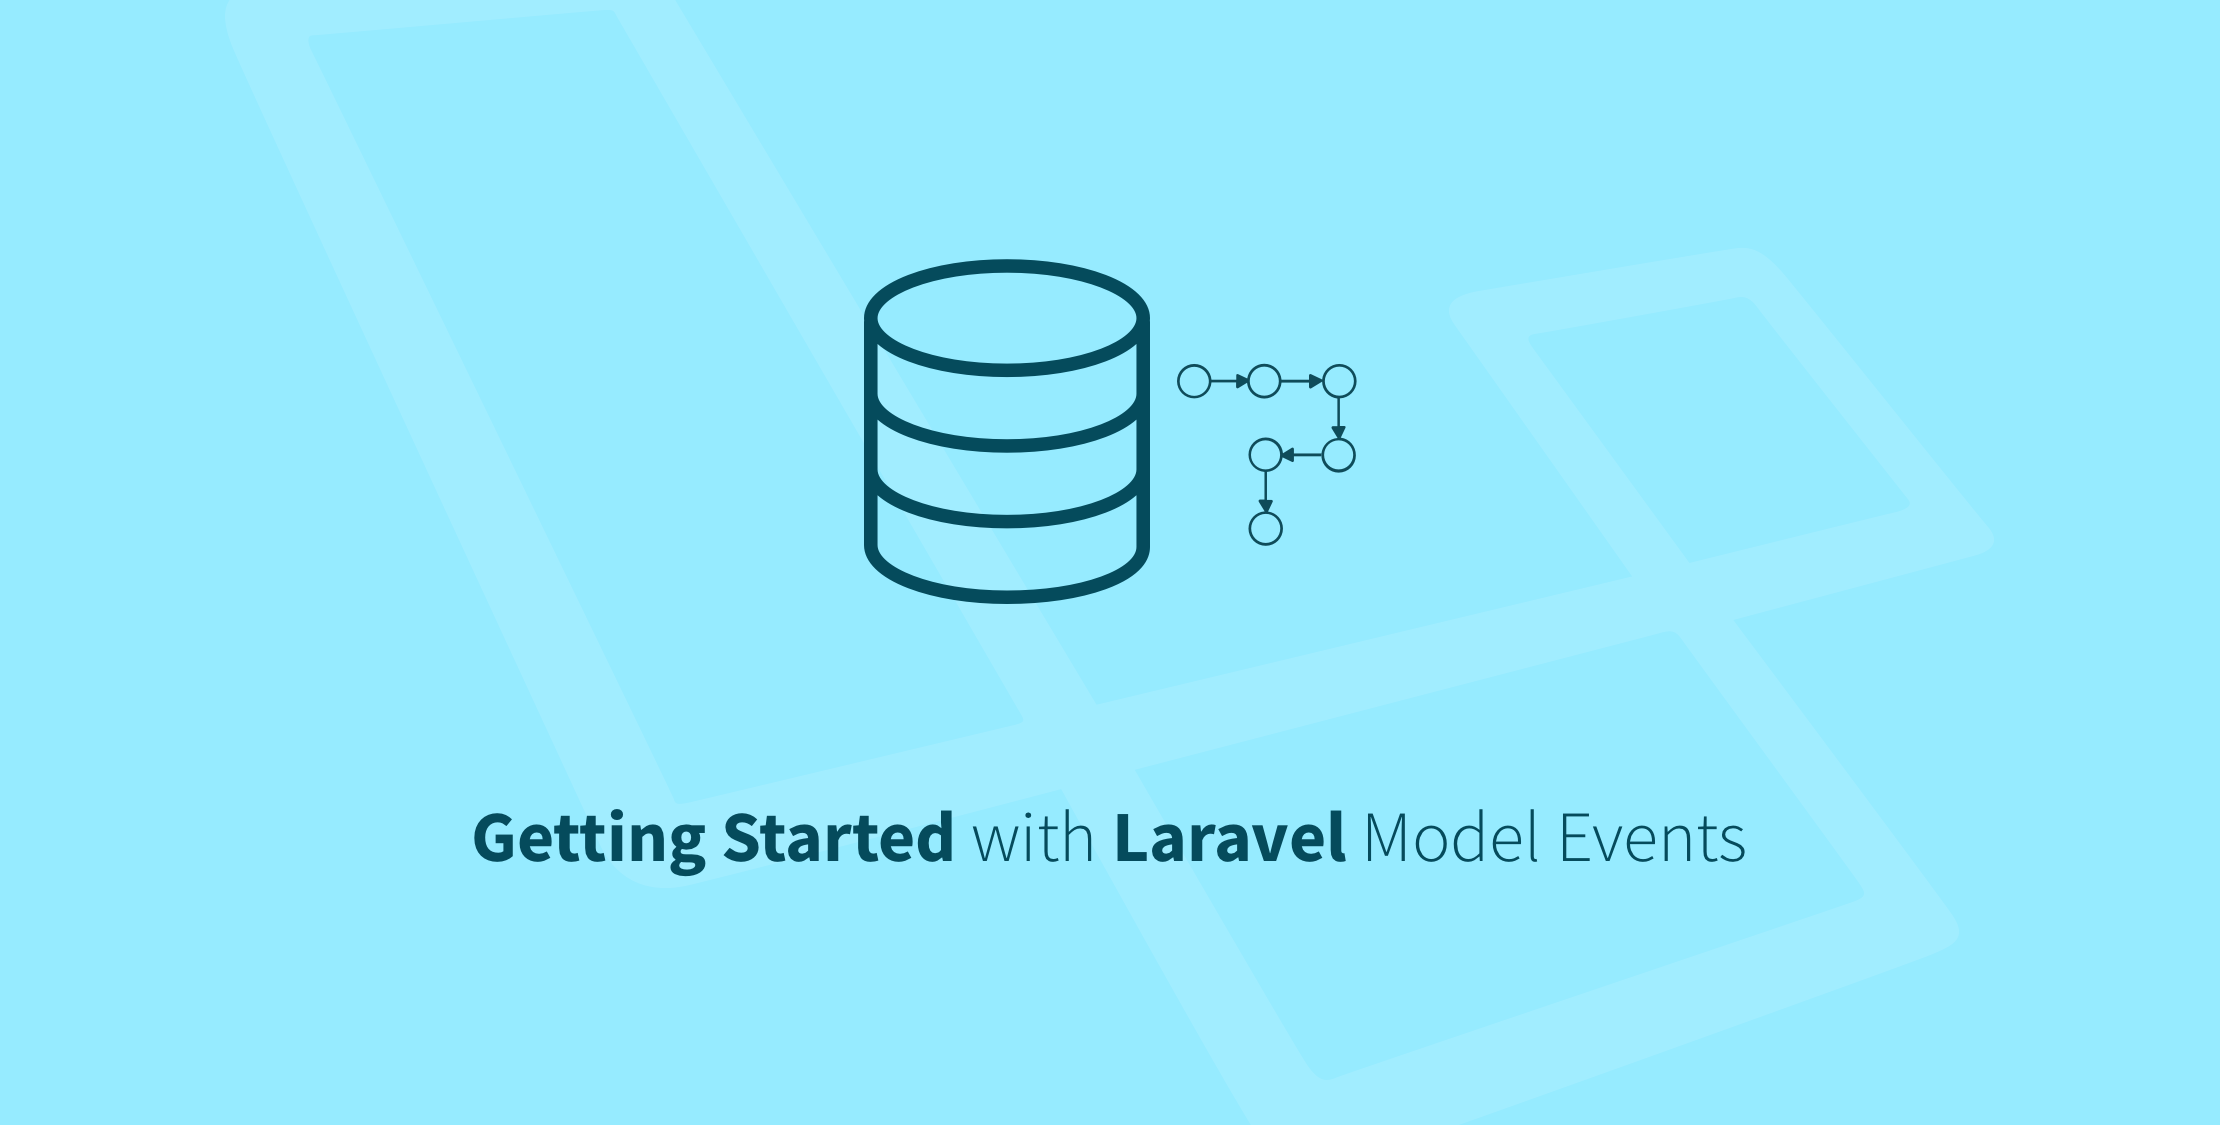 laravel-model-events-getting-started.png